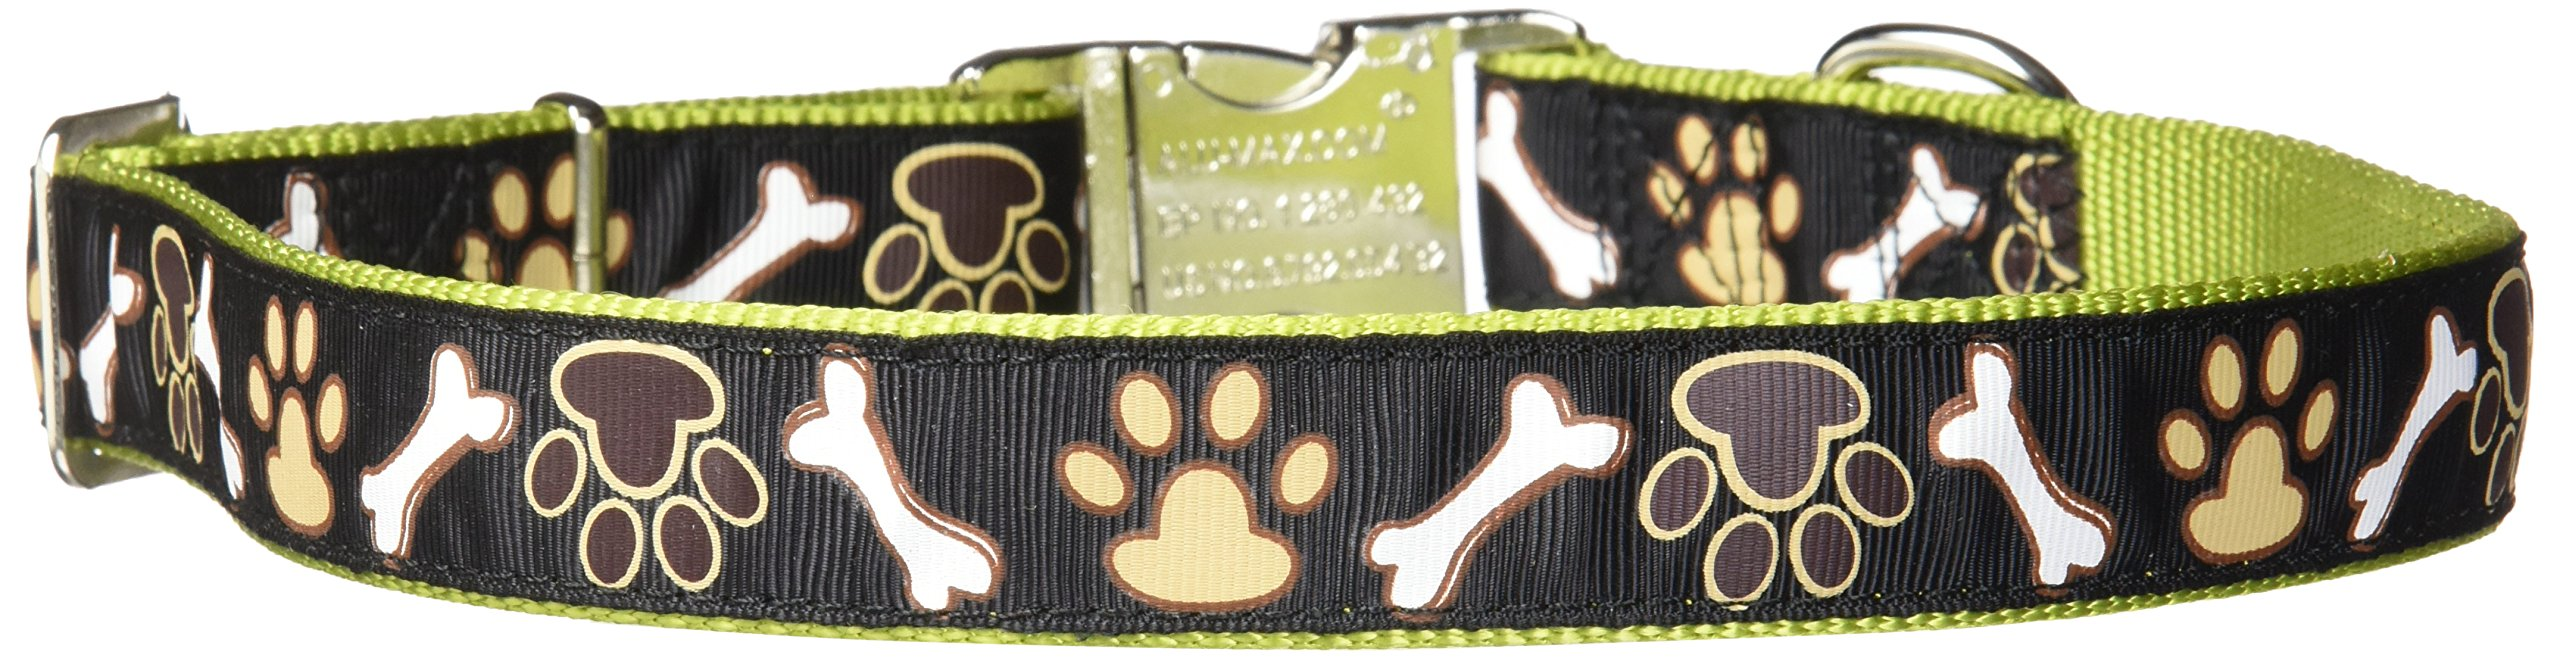 Pet Attire Ribbon Adjustable Nylon Collar with Aluminum Buckle, 1'' x 26''